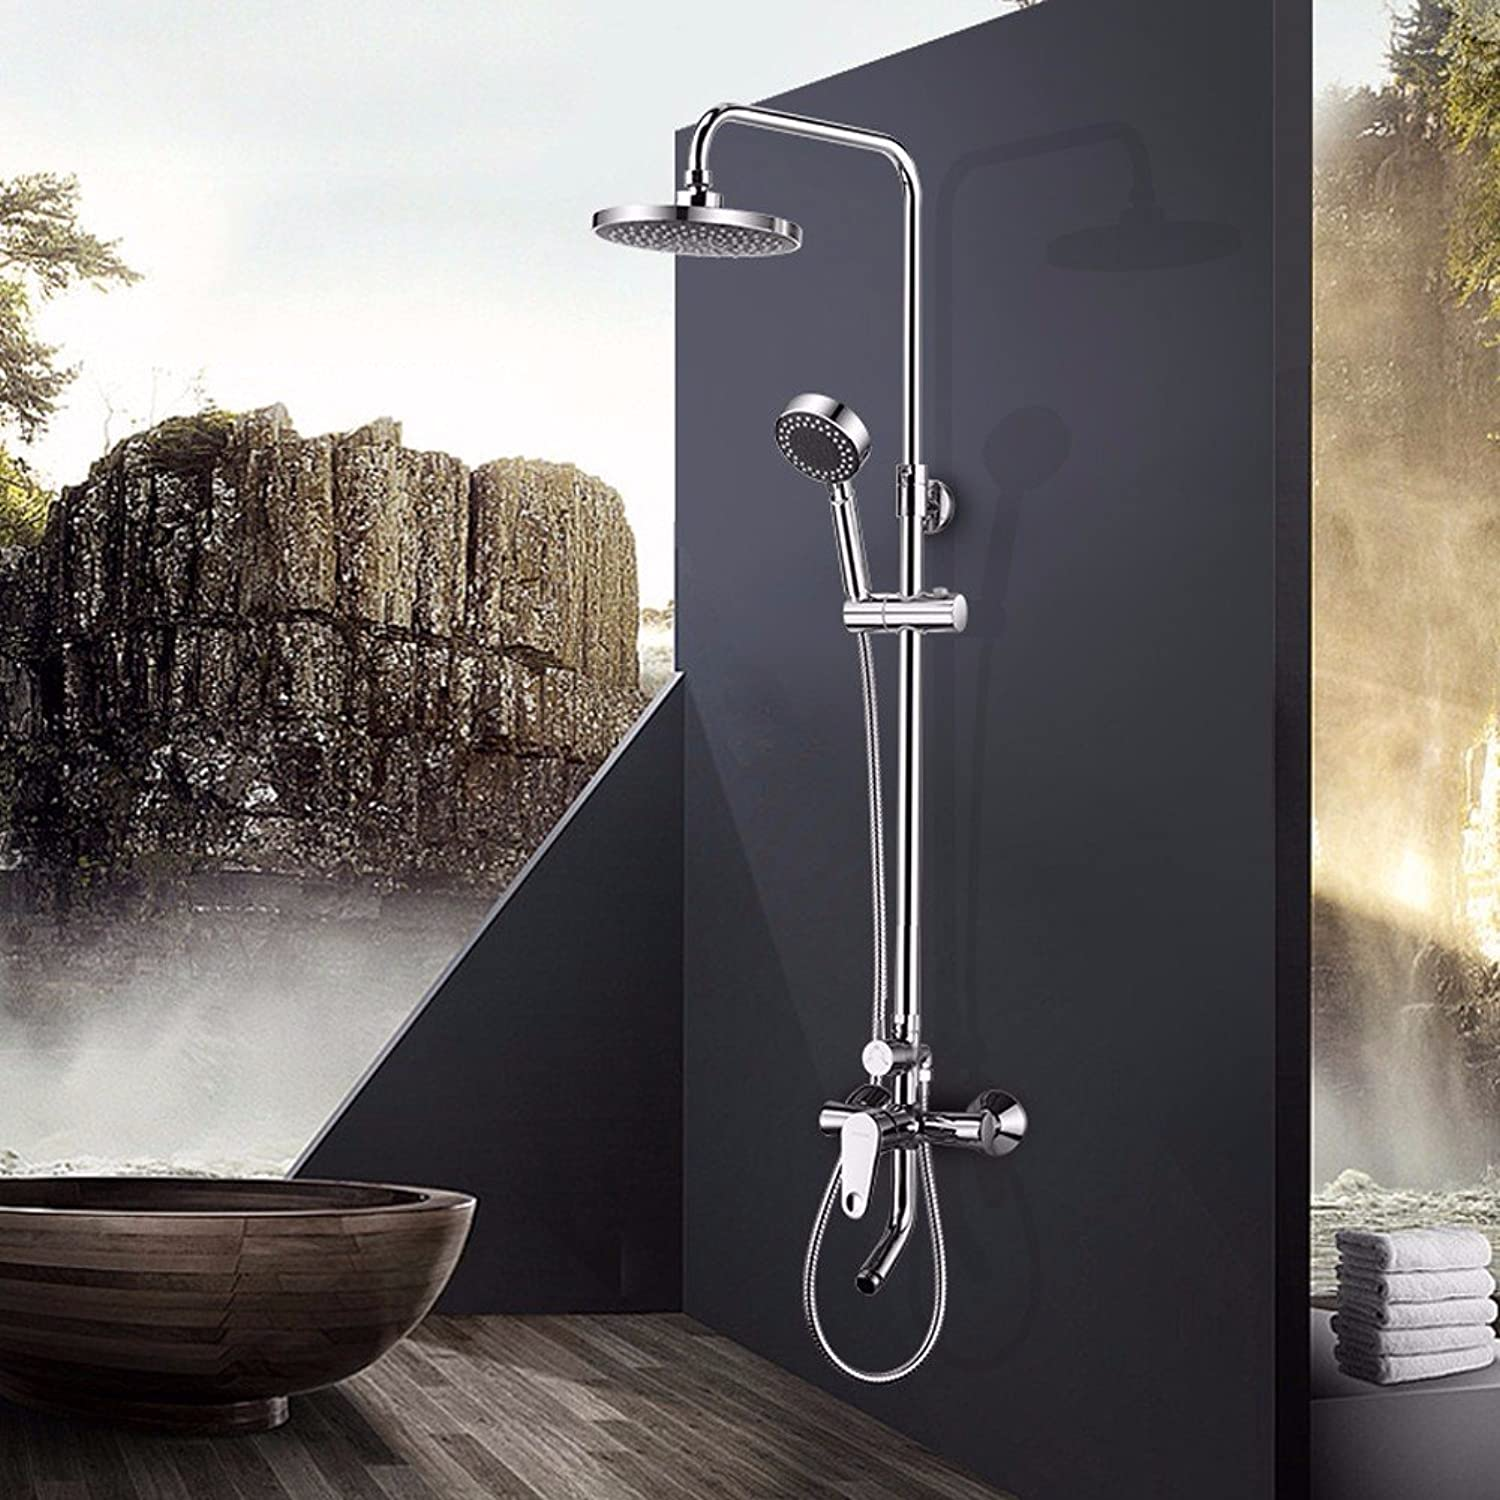 KPHP-All copper bathroom shower, hot and cold faucet swivel nozzle, wall mounted shower